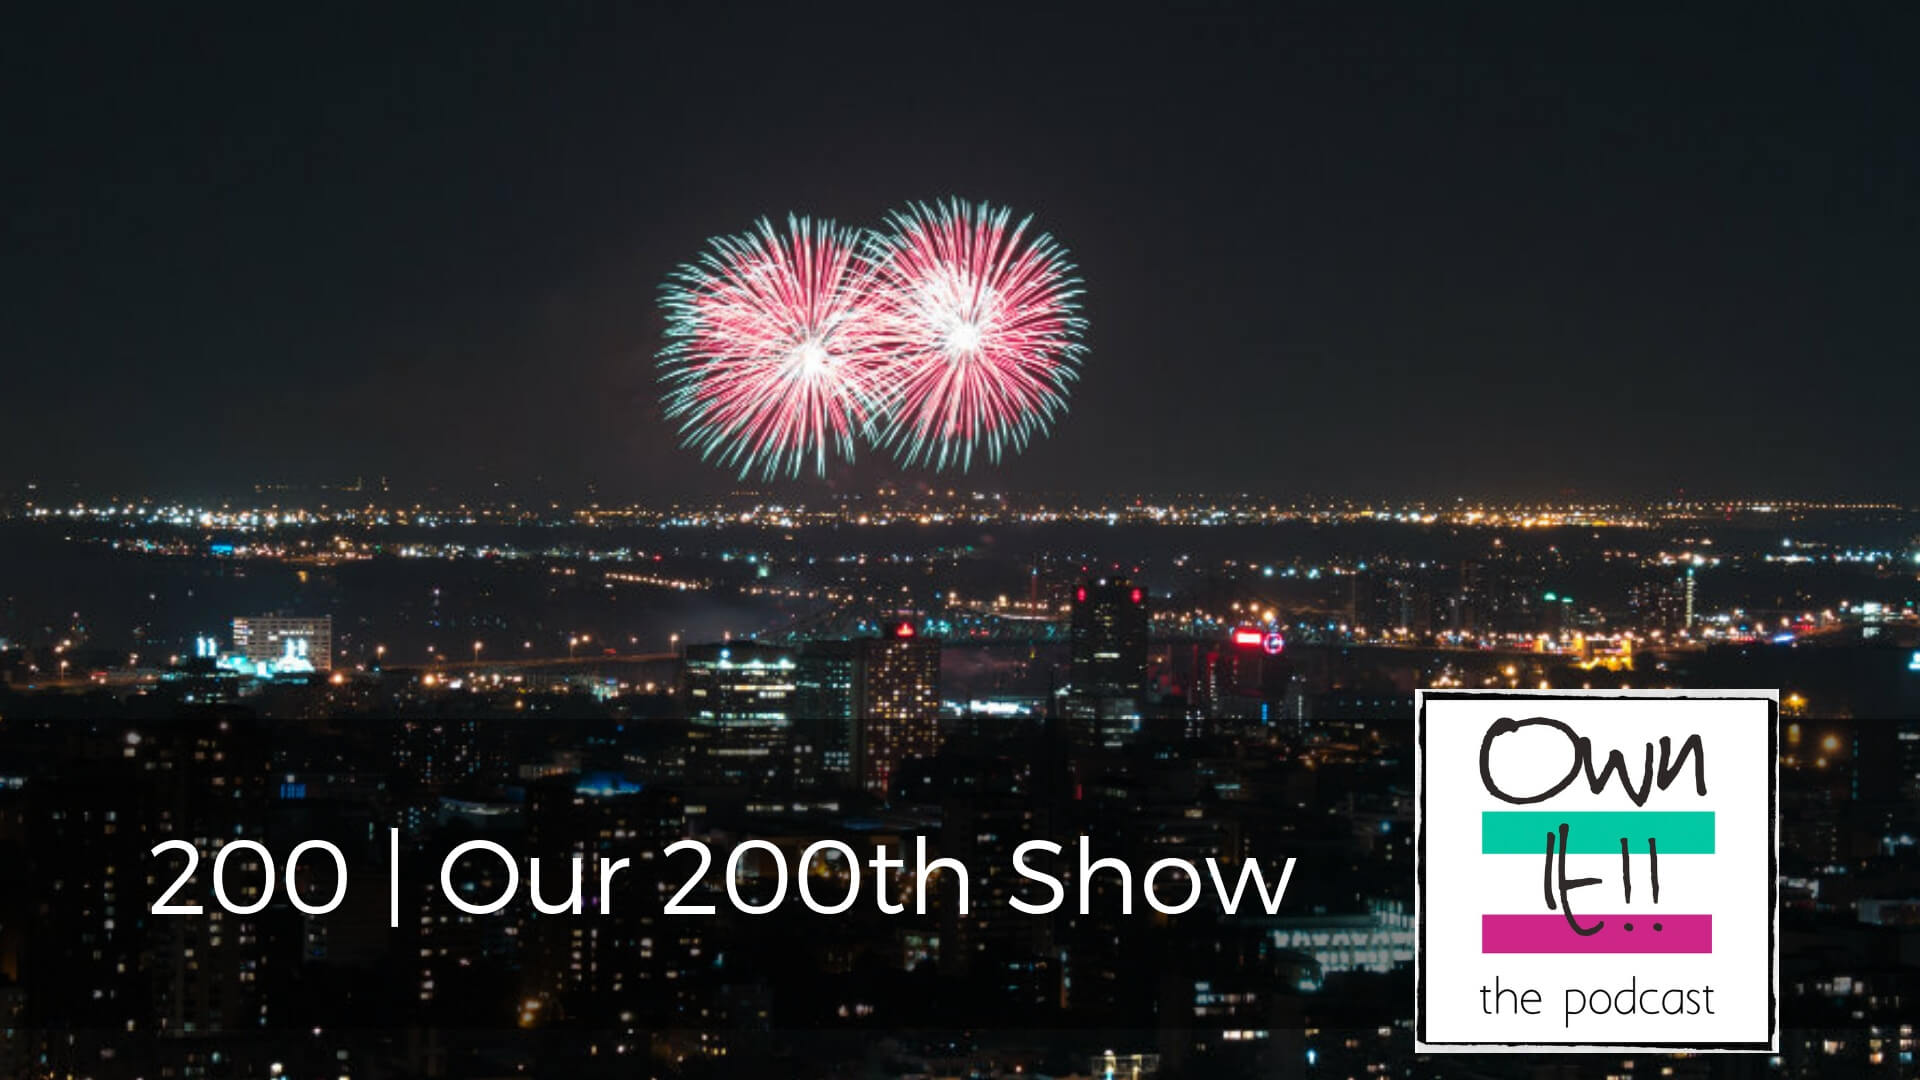 Own It! 200 | Our 200th Show